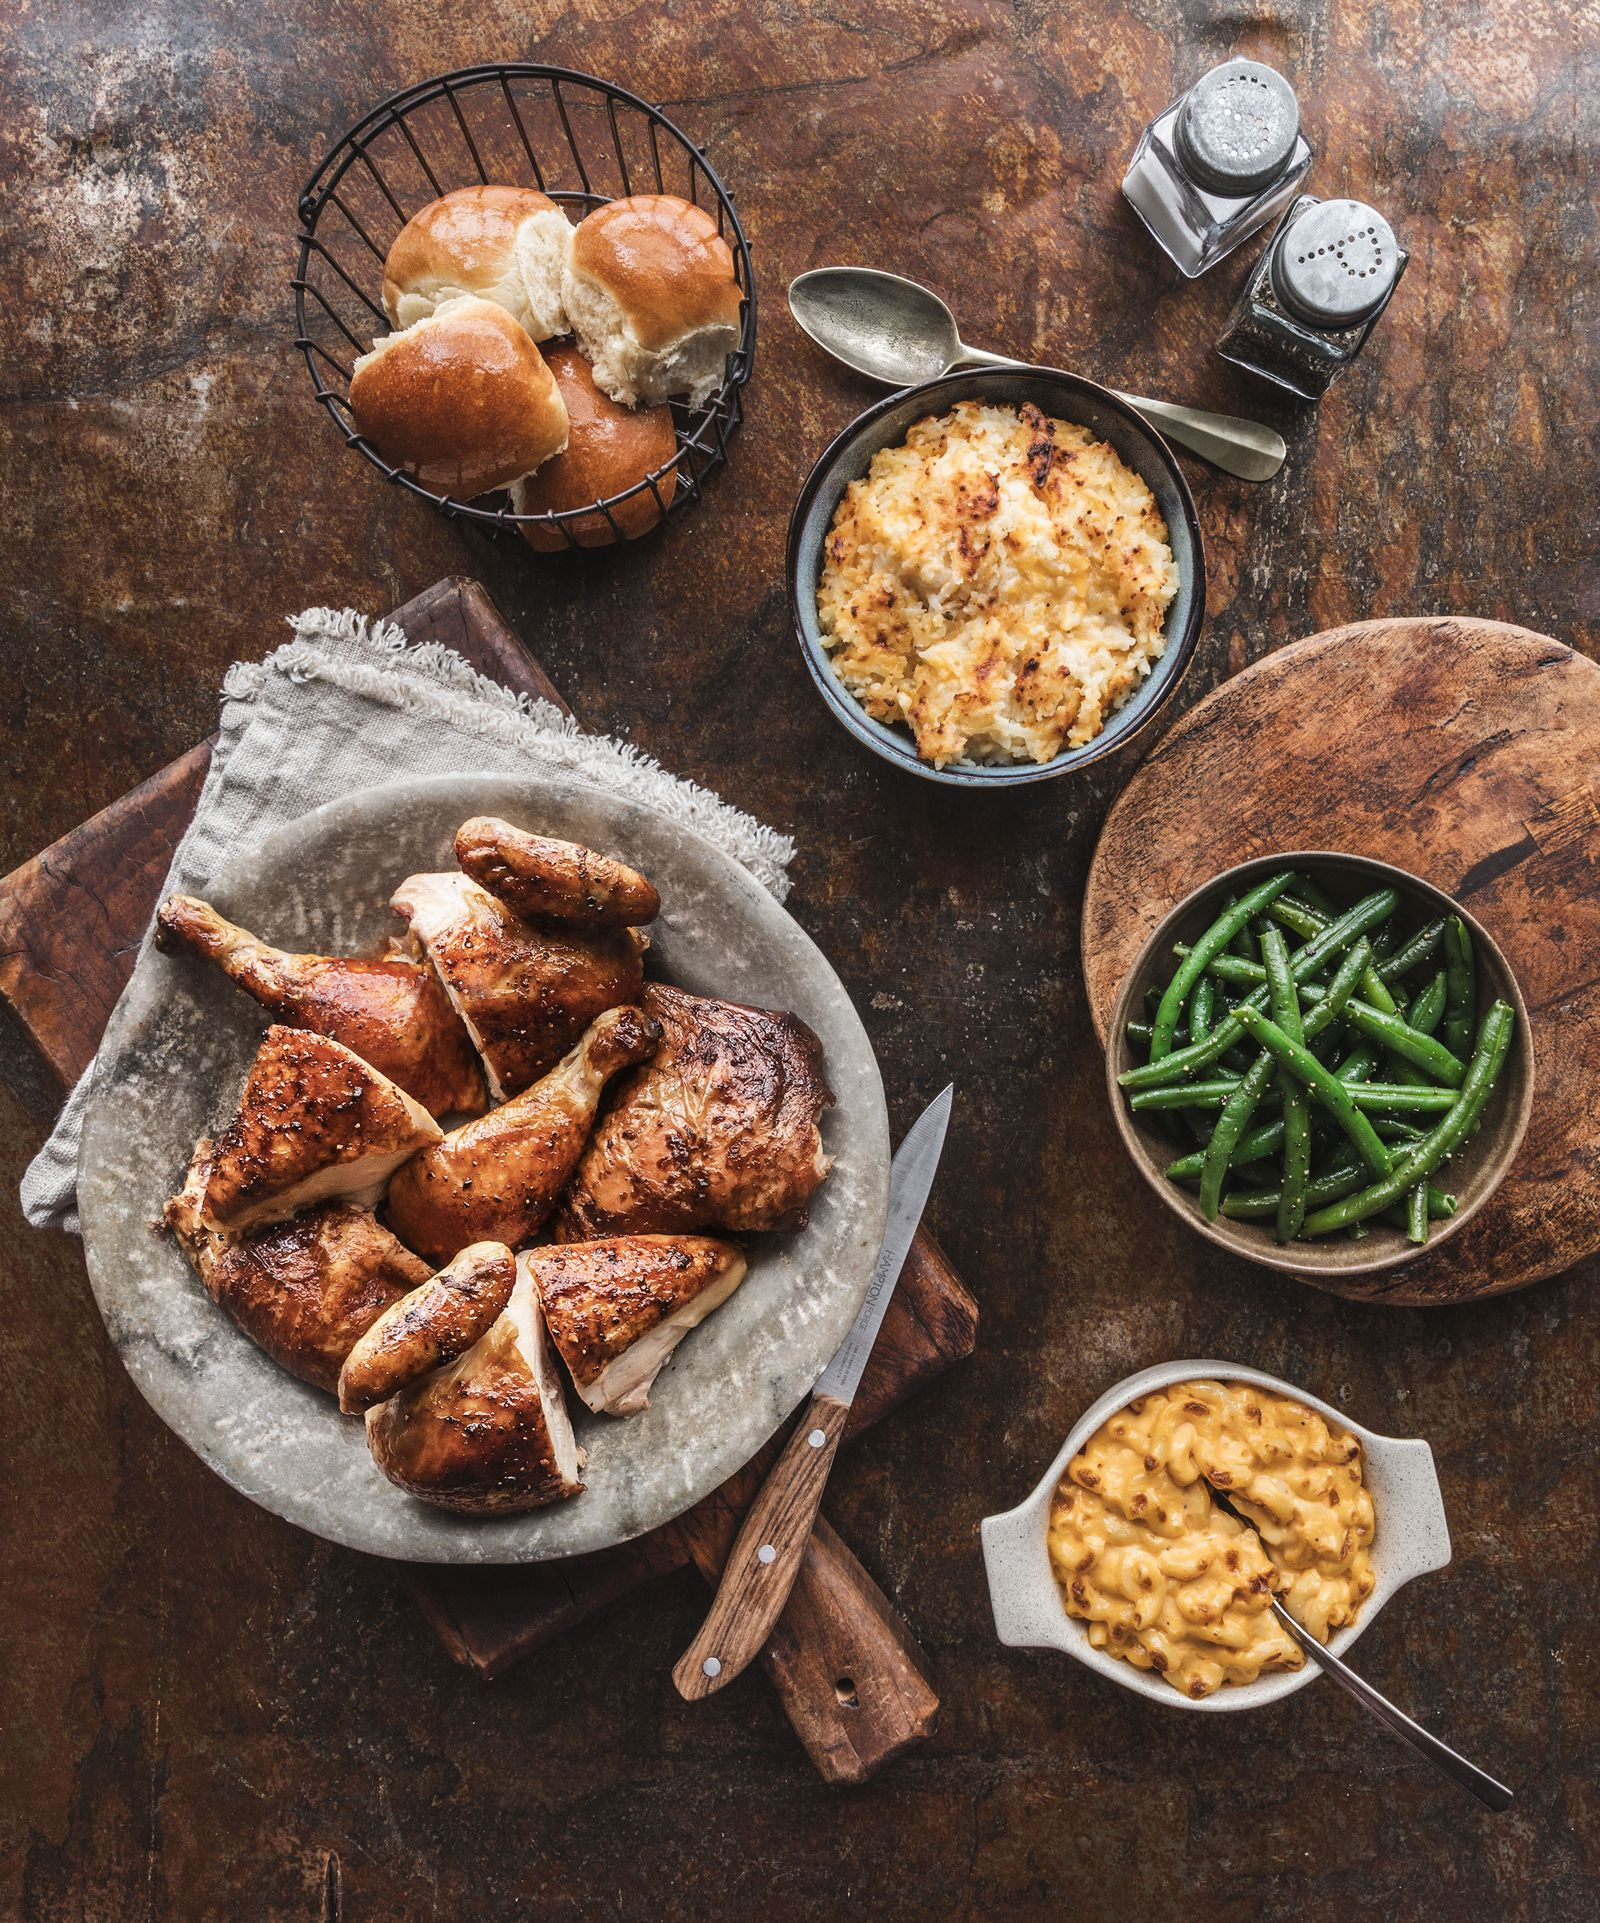 Cowboy Chicken Partners With Comfort Food Care Package Program to Feed At-Risk Families